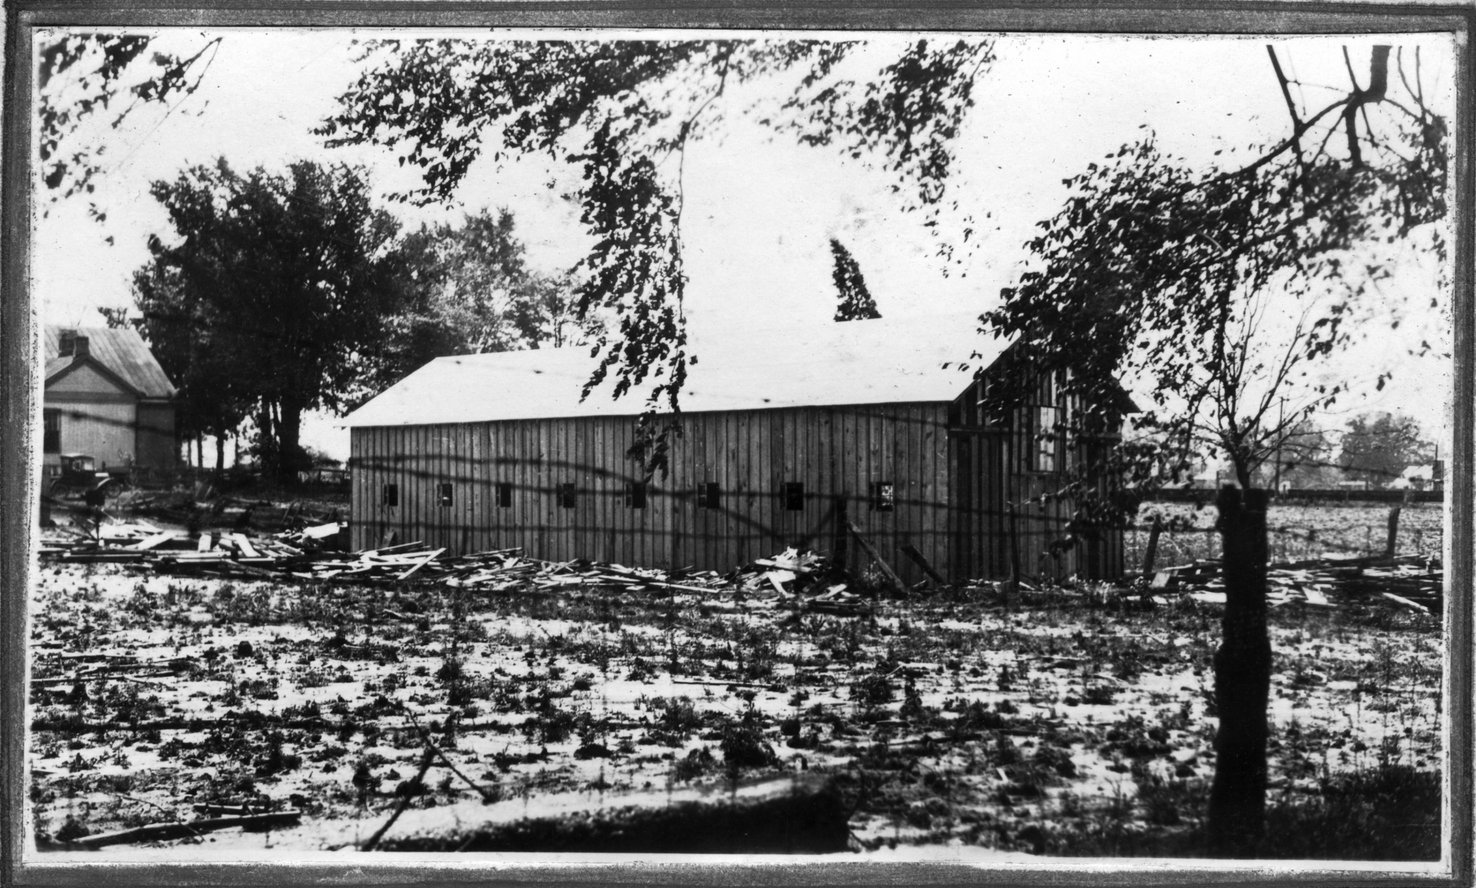 089~W. A. Russom New Barn Apr 1921.jpg